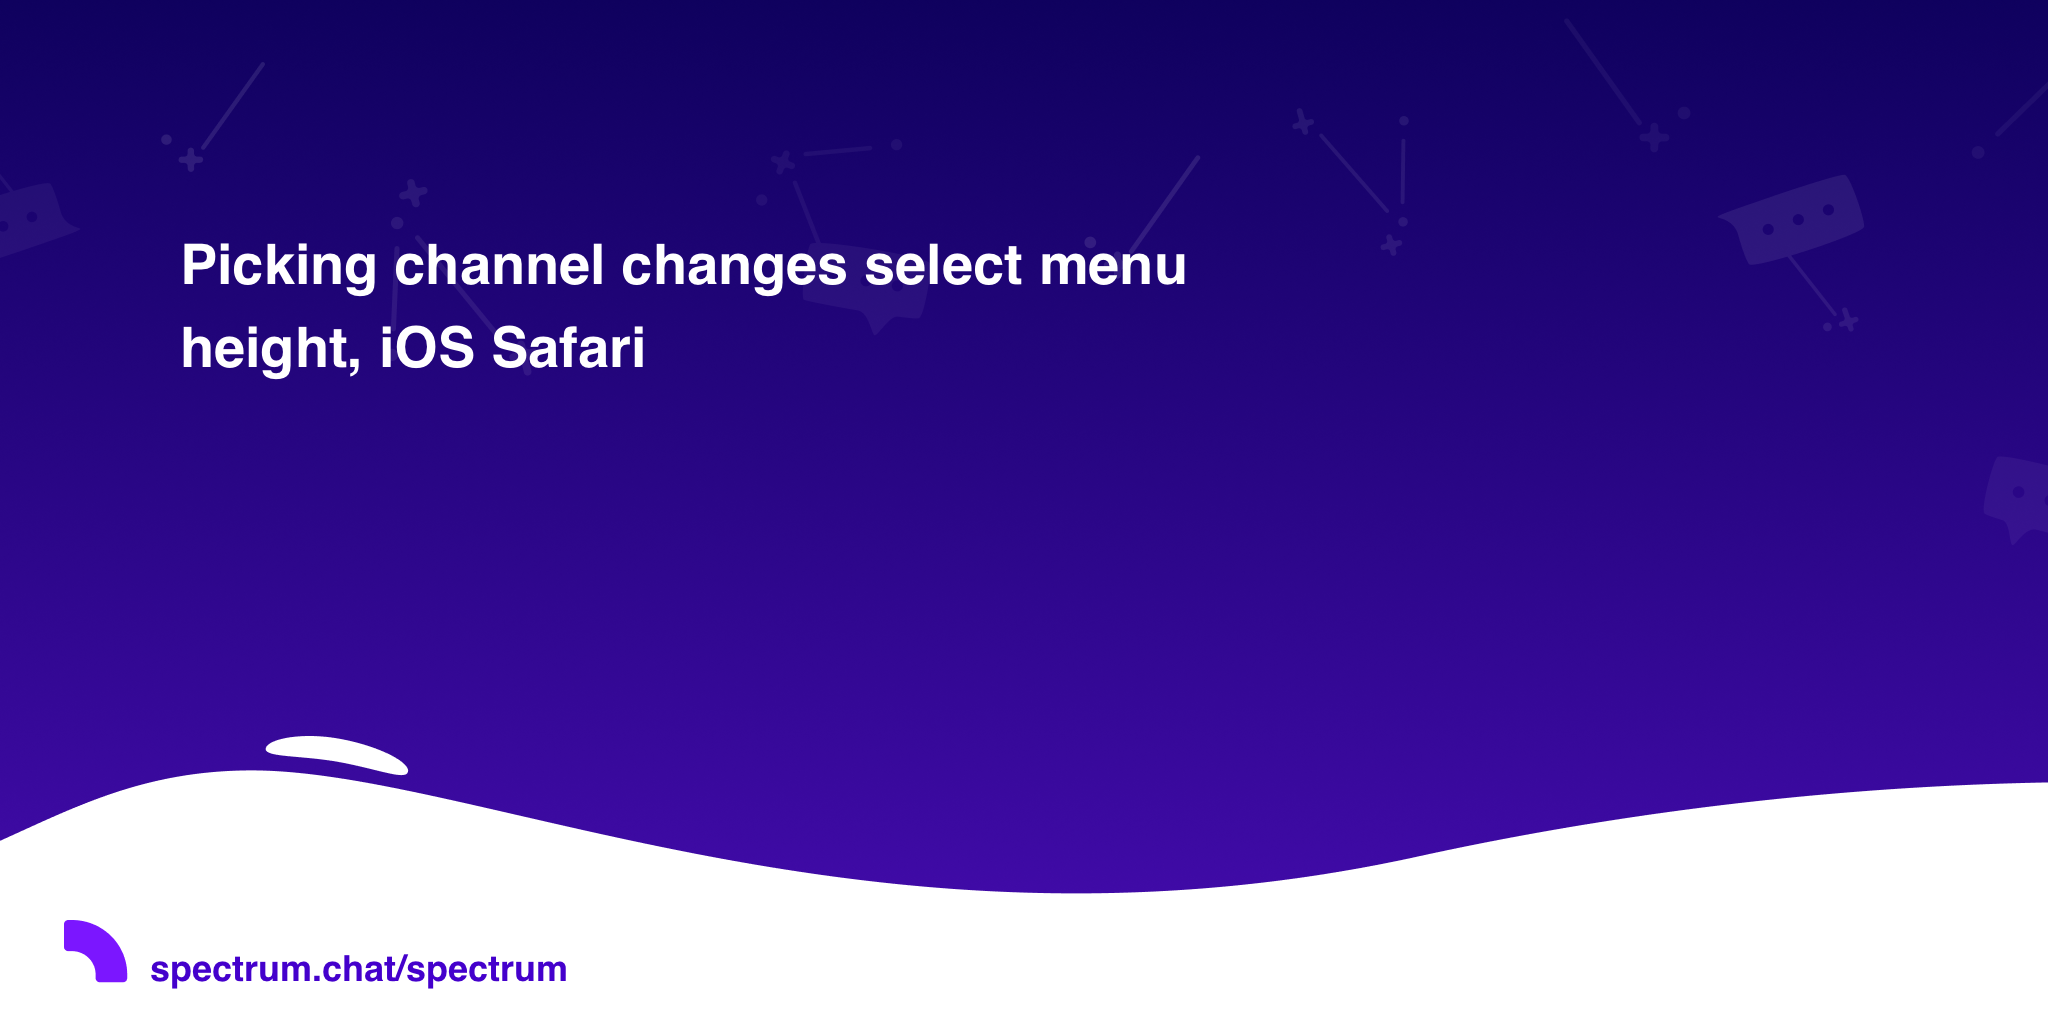 Picking channel changes select menu height, iOS Safari